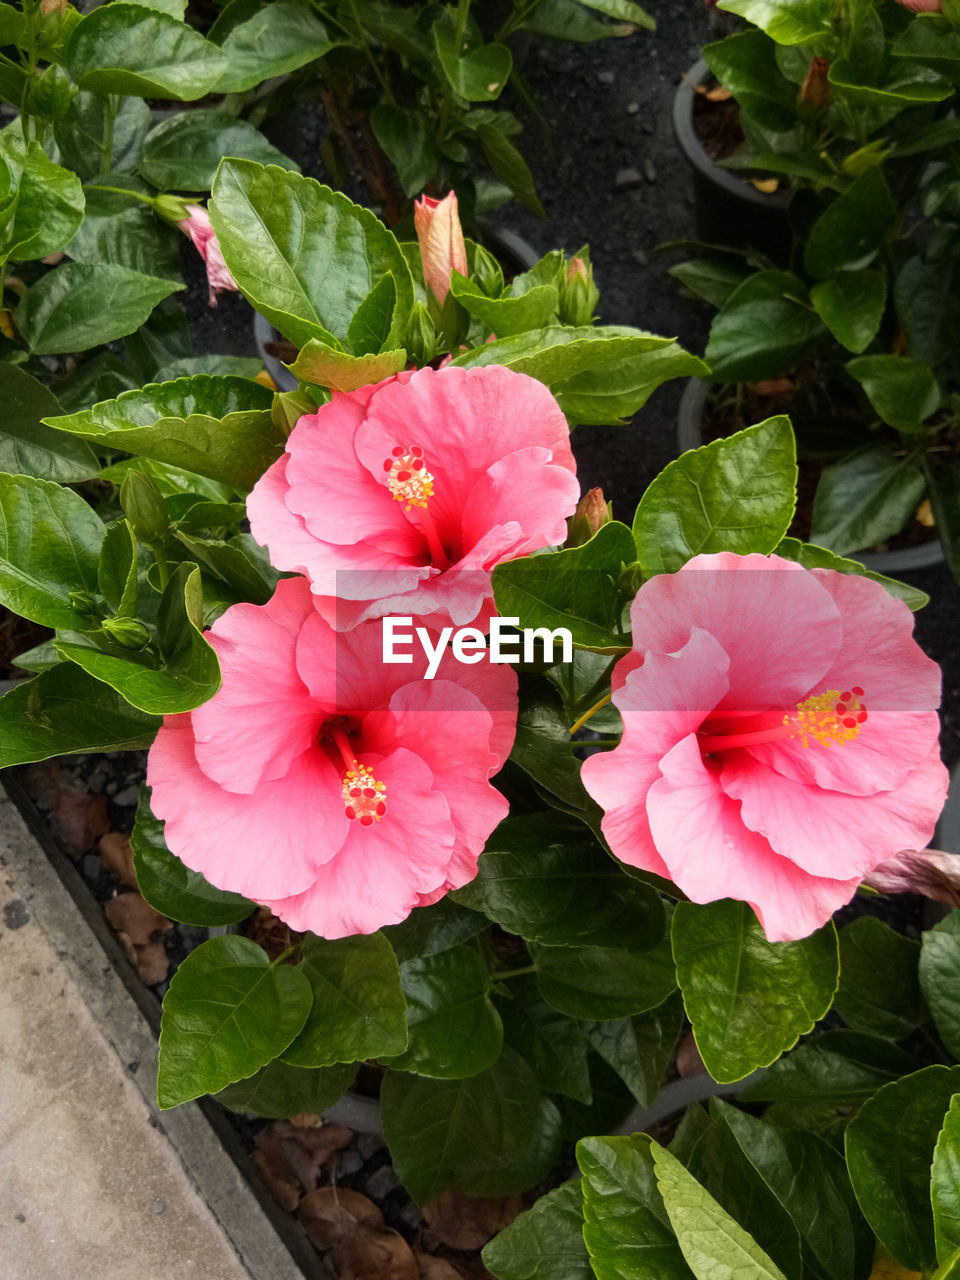 flower, growth, leaf, petal, flower head, beauty in nature, plant, freshness, nature, fragility, blooming, pink color, green color, no people, outdoors, day, close-up, periwinkle